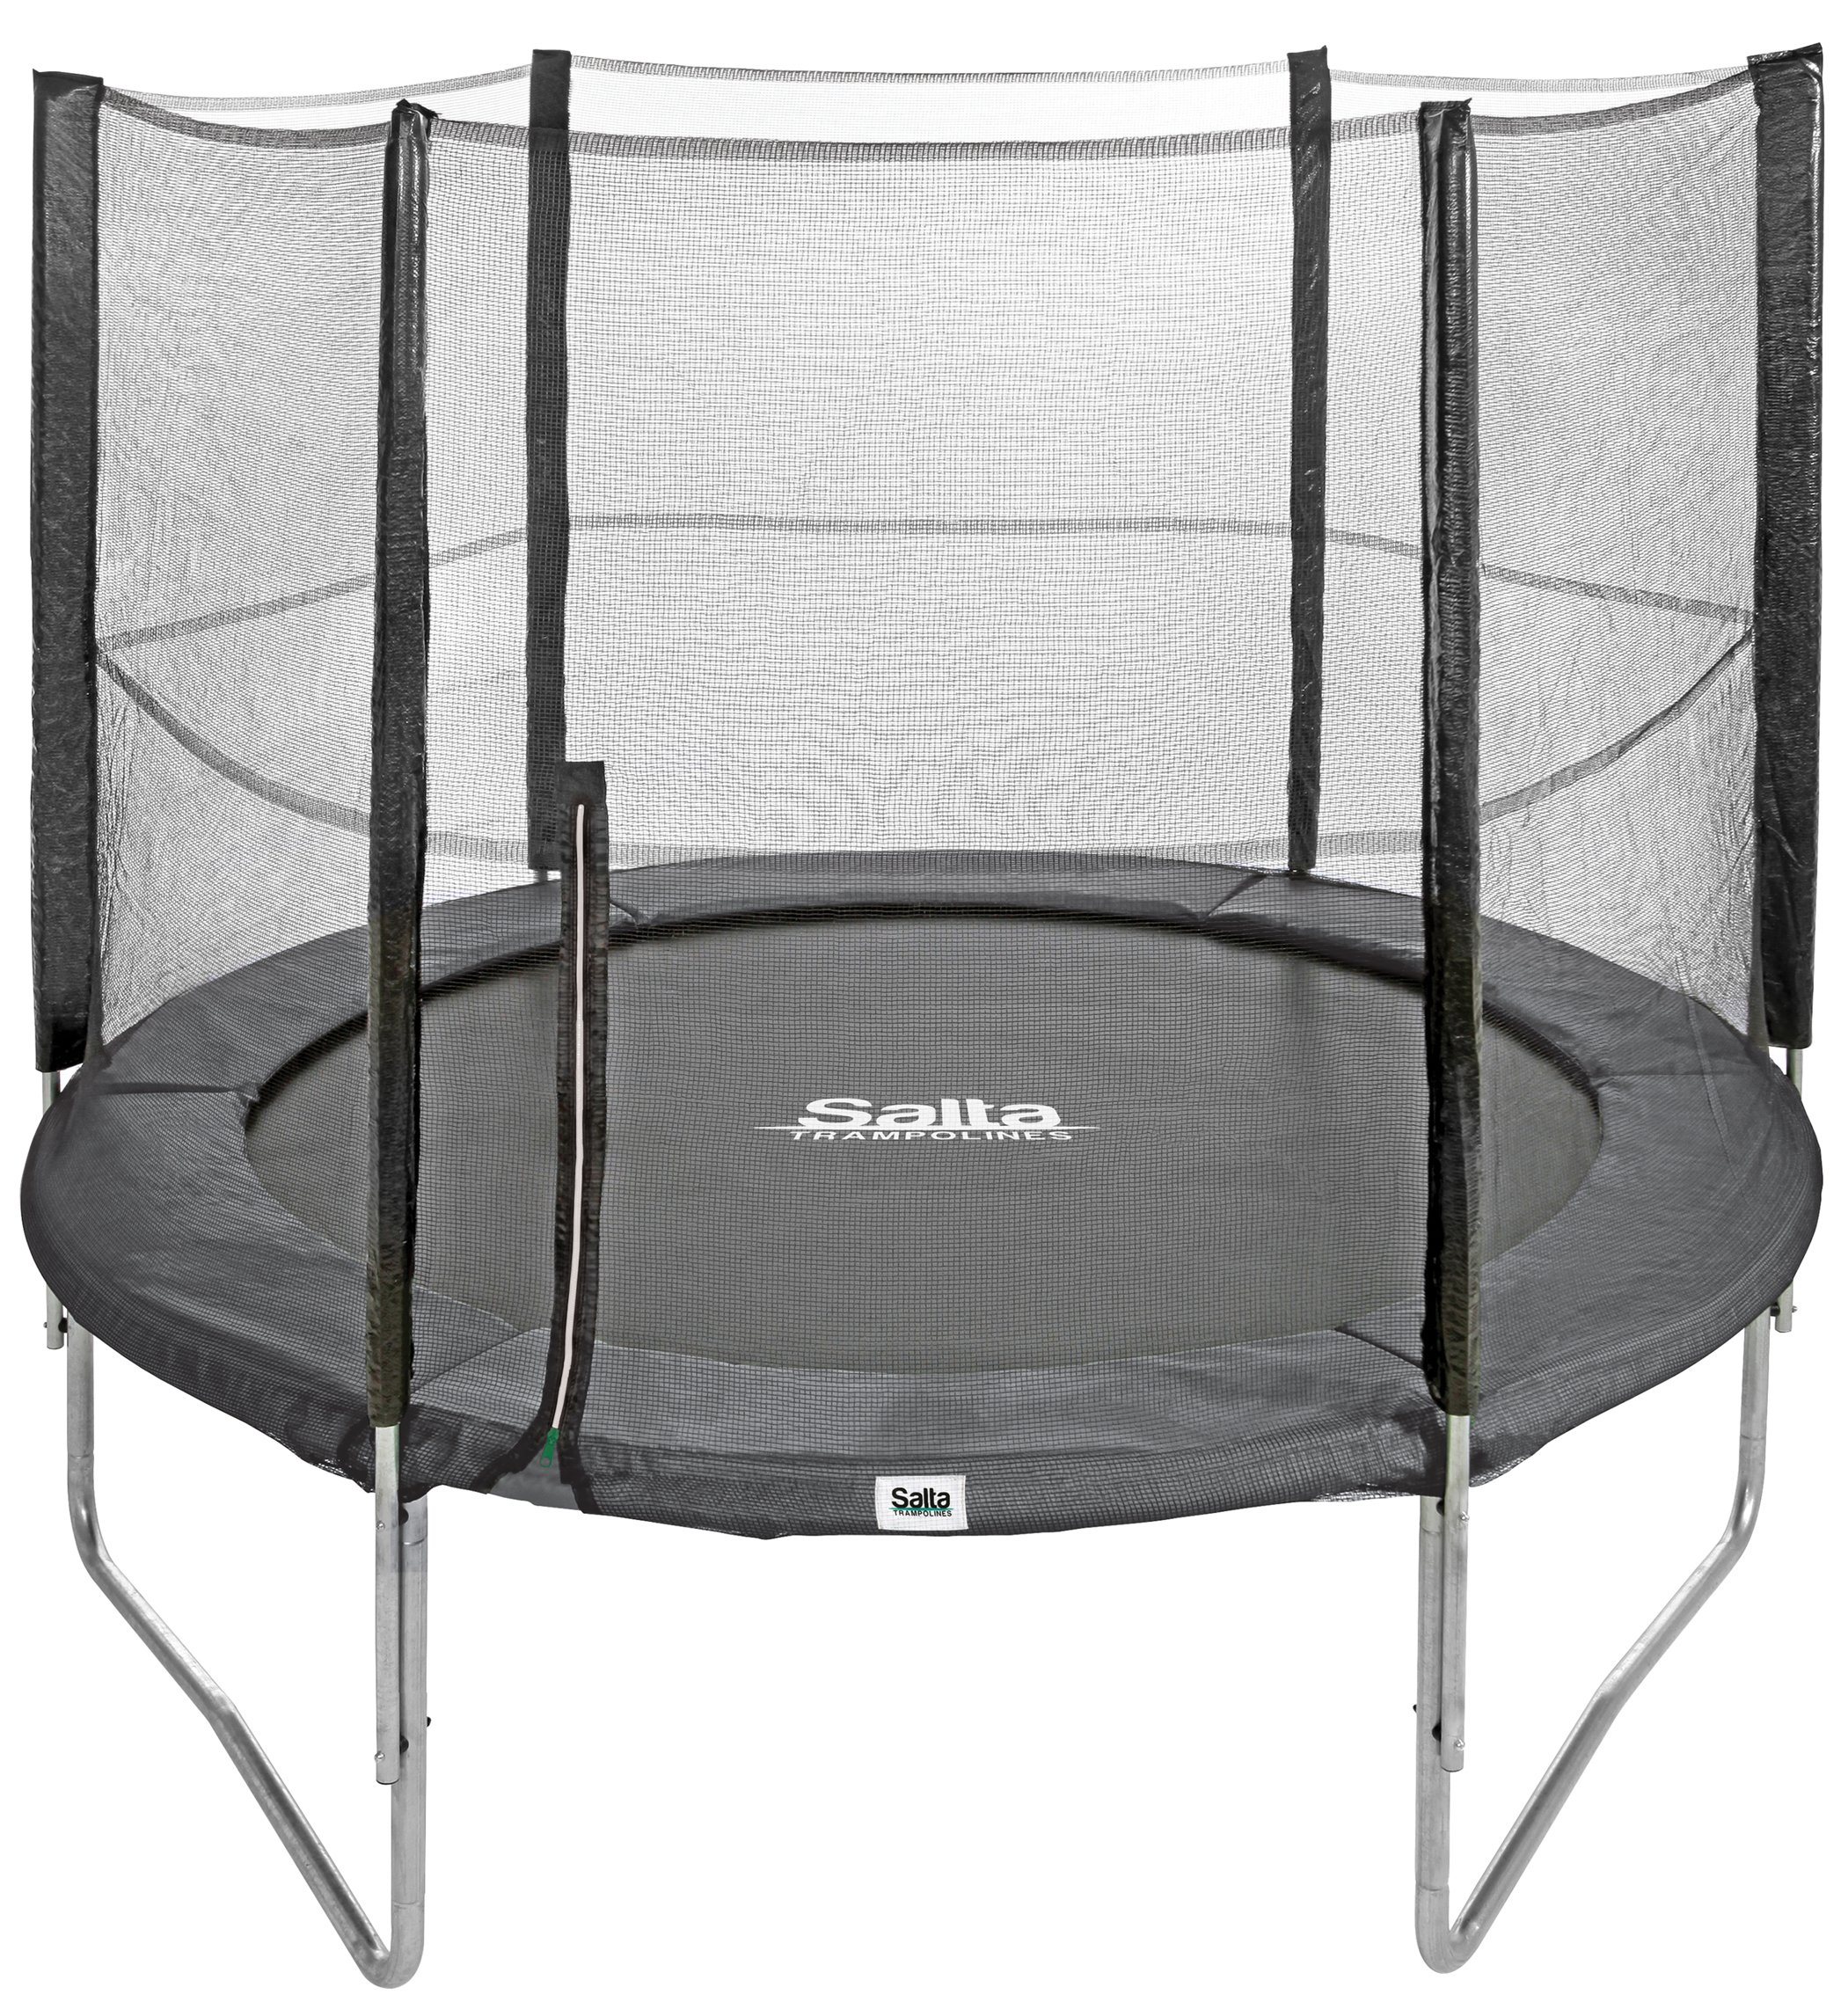 salta combo set trampoline kopen trampoline frank. Black Bedroom Furniture Sets. Home Design Ideas